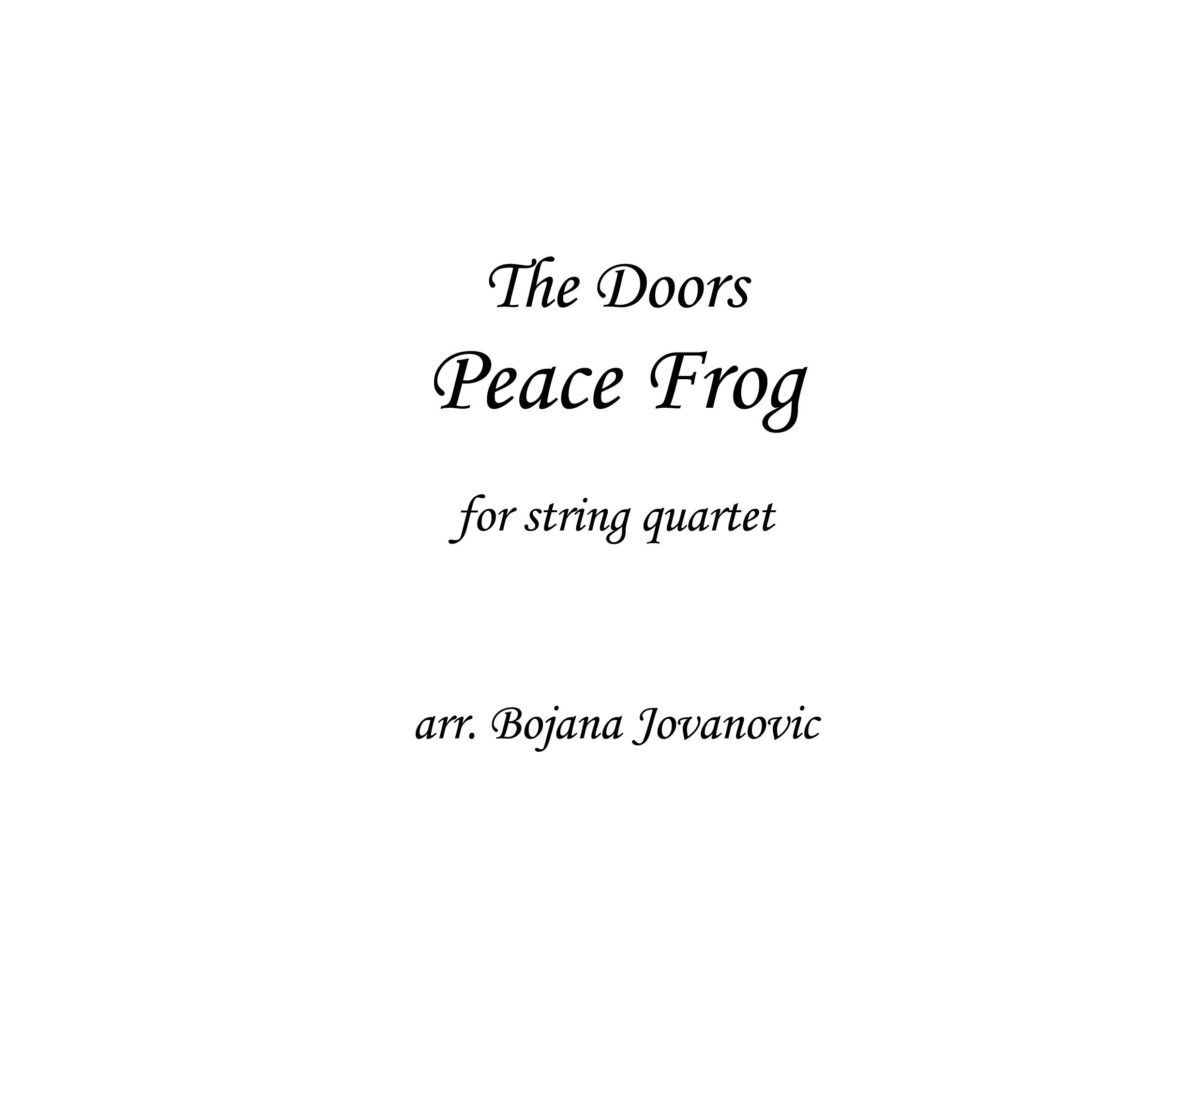 Peace Frog (The Doors) - Sheet Music